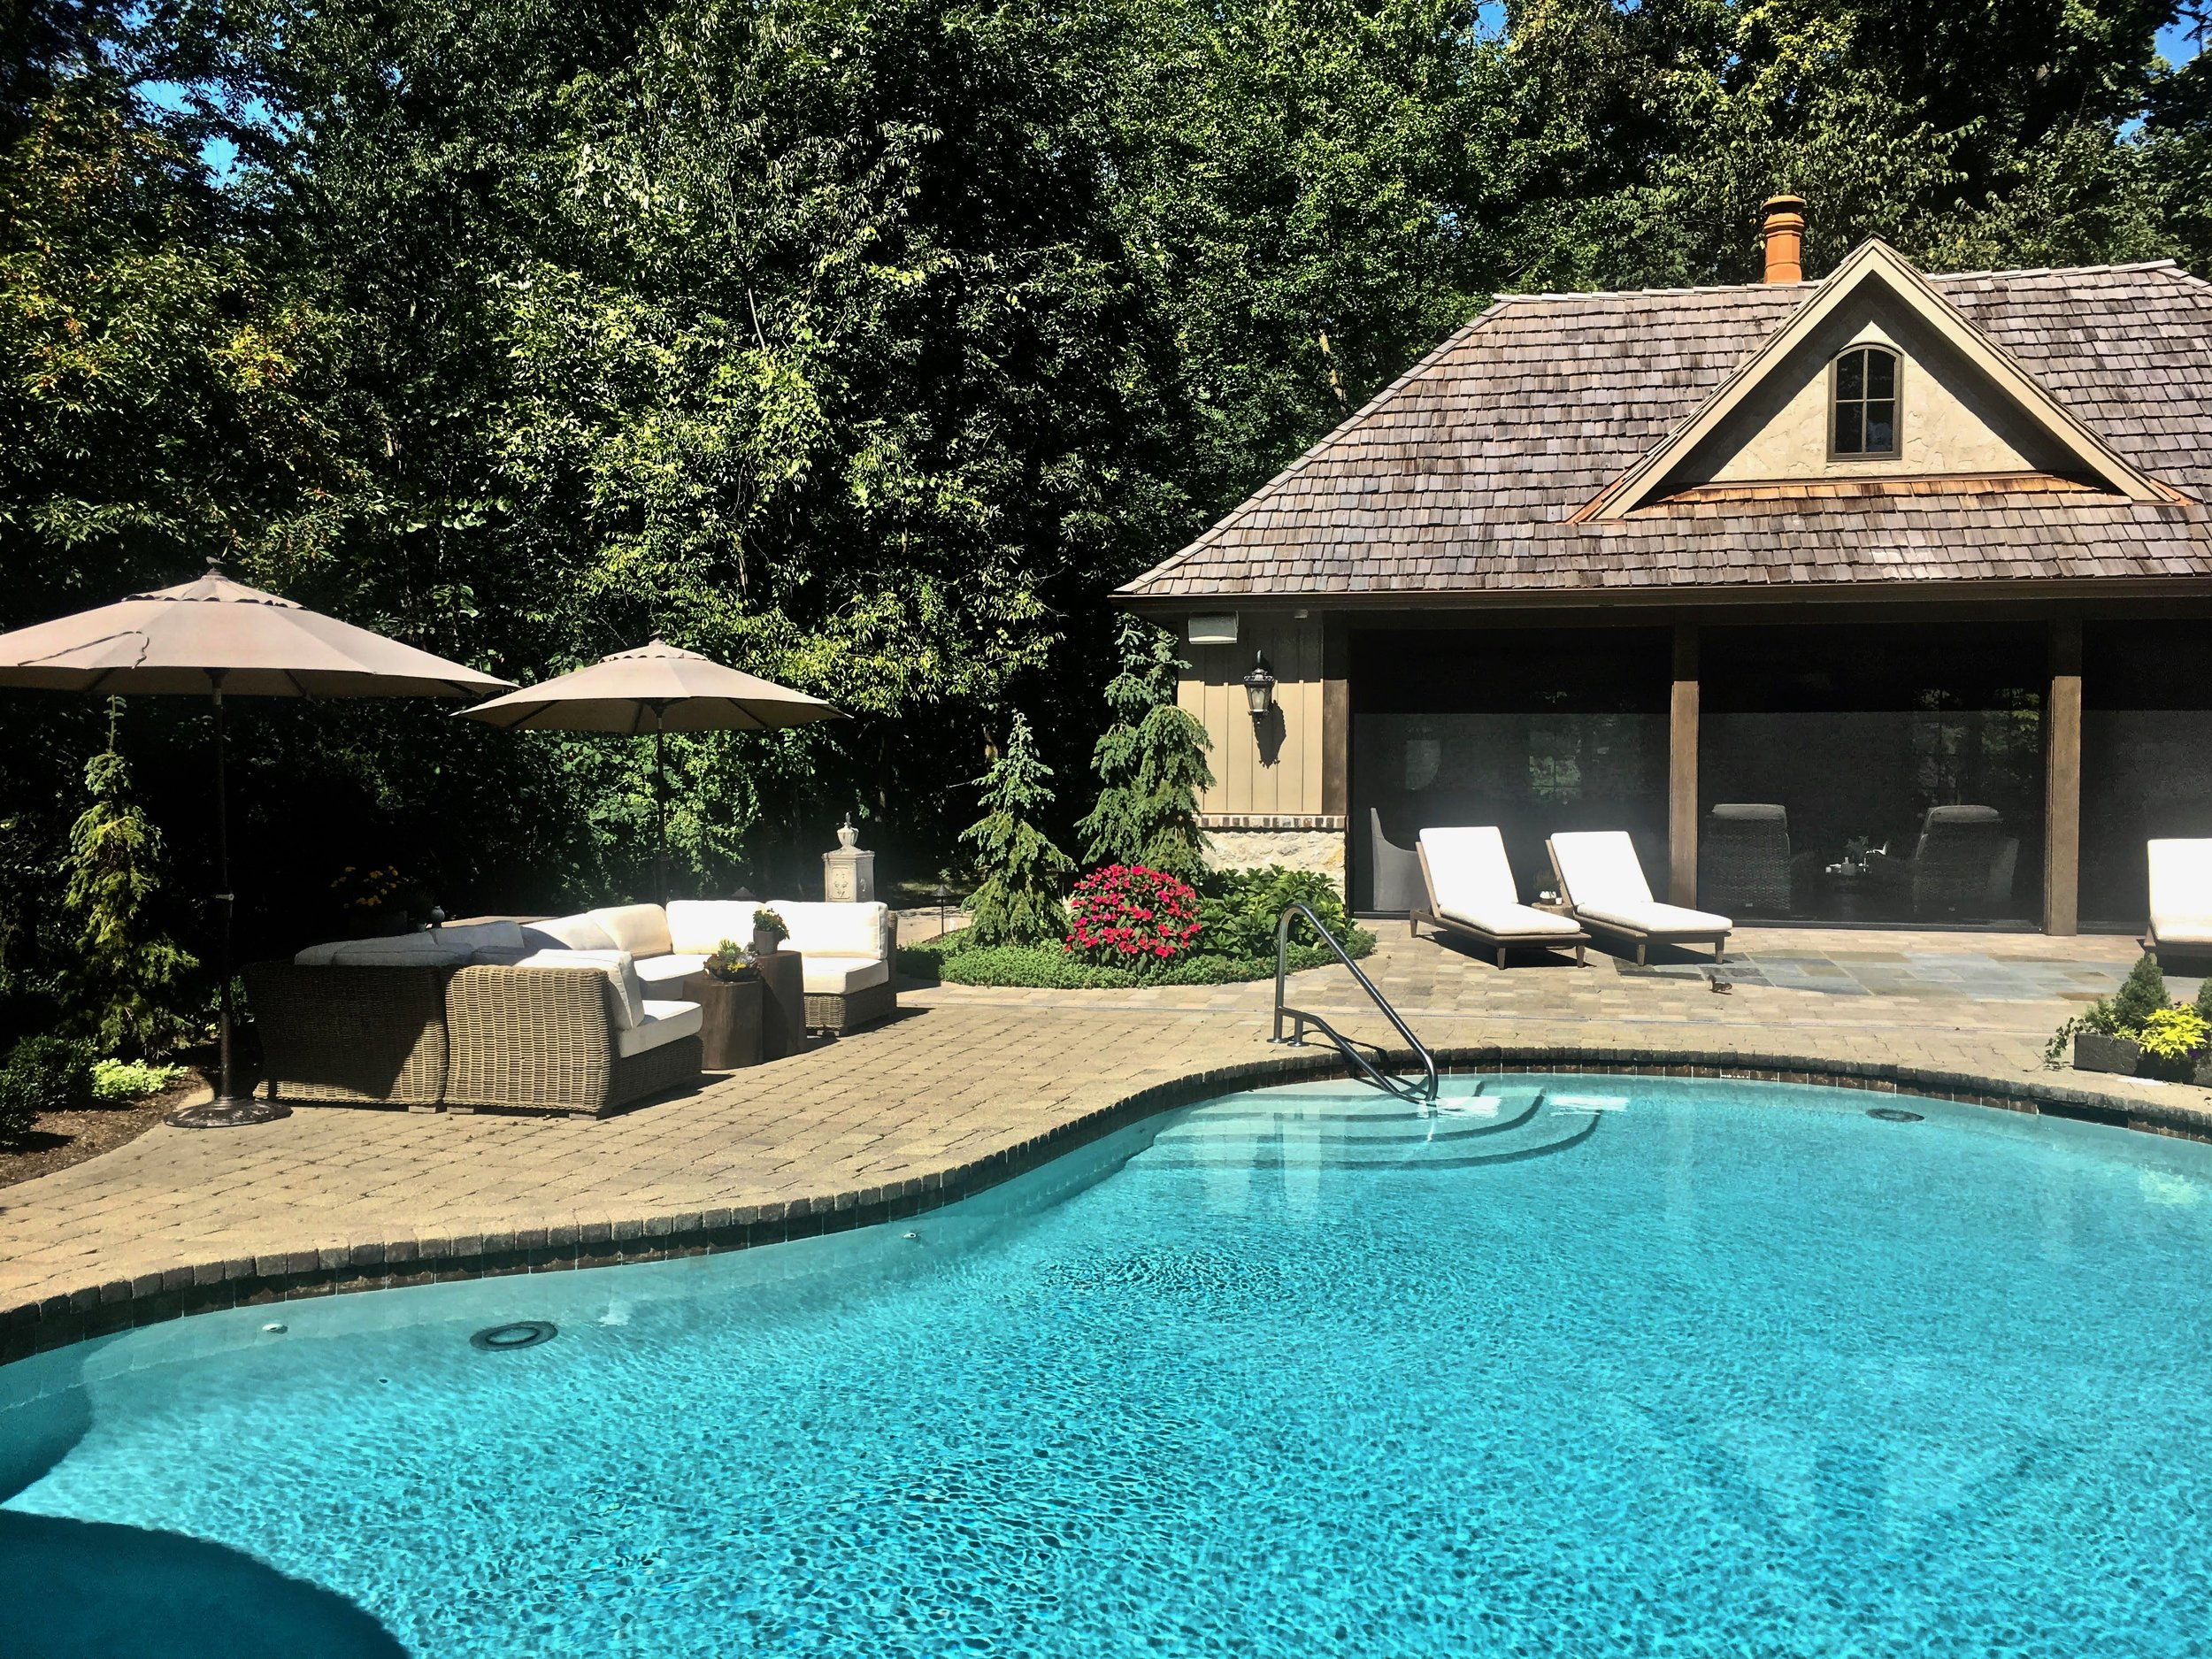 St. Charles IL. Custom Pool House With Retractable Screens